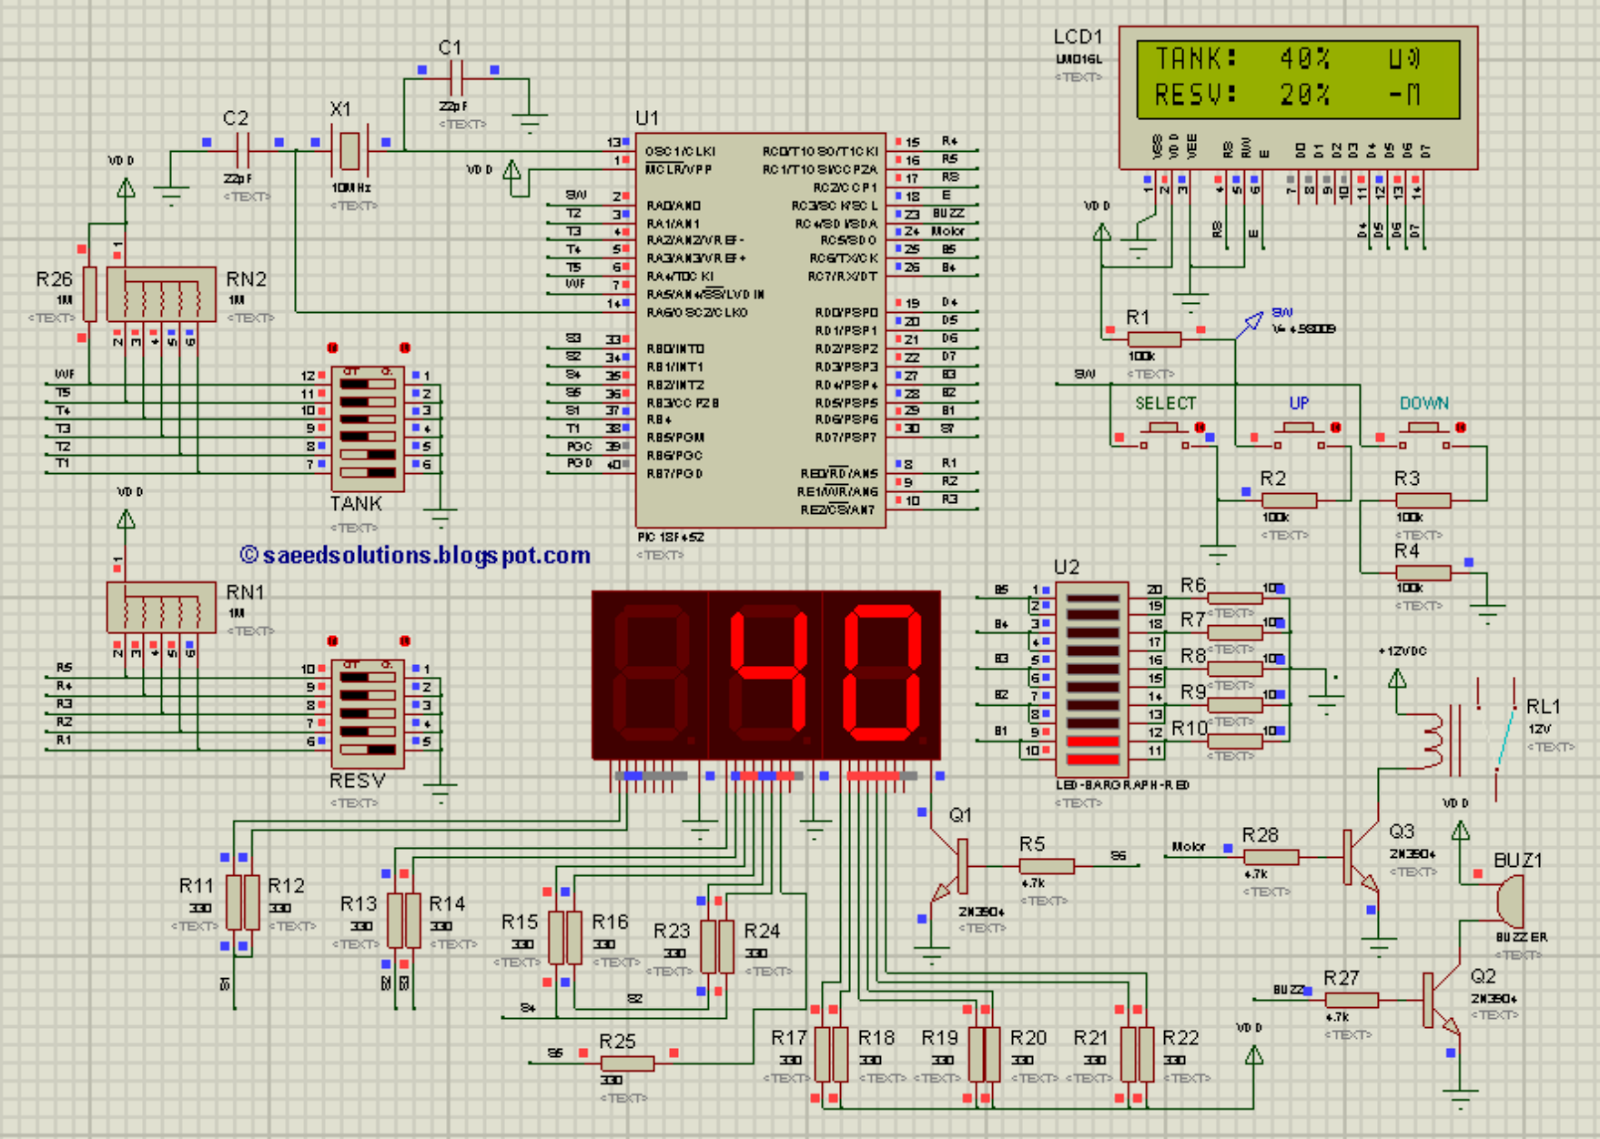 Alcohol Breathalyzer Circuit Using 8051 Microcontroller 5388424 Wiring Diagram Idconlinebreathalyzer Diagramsalcohol